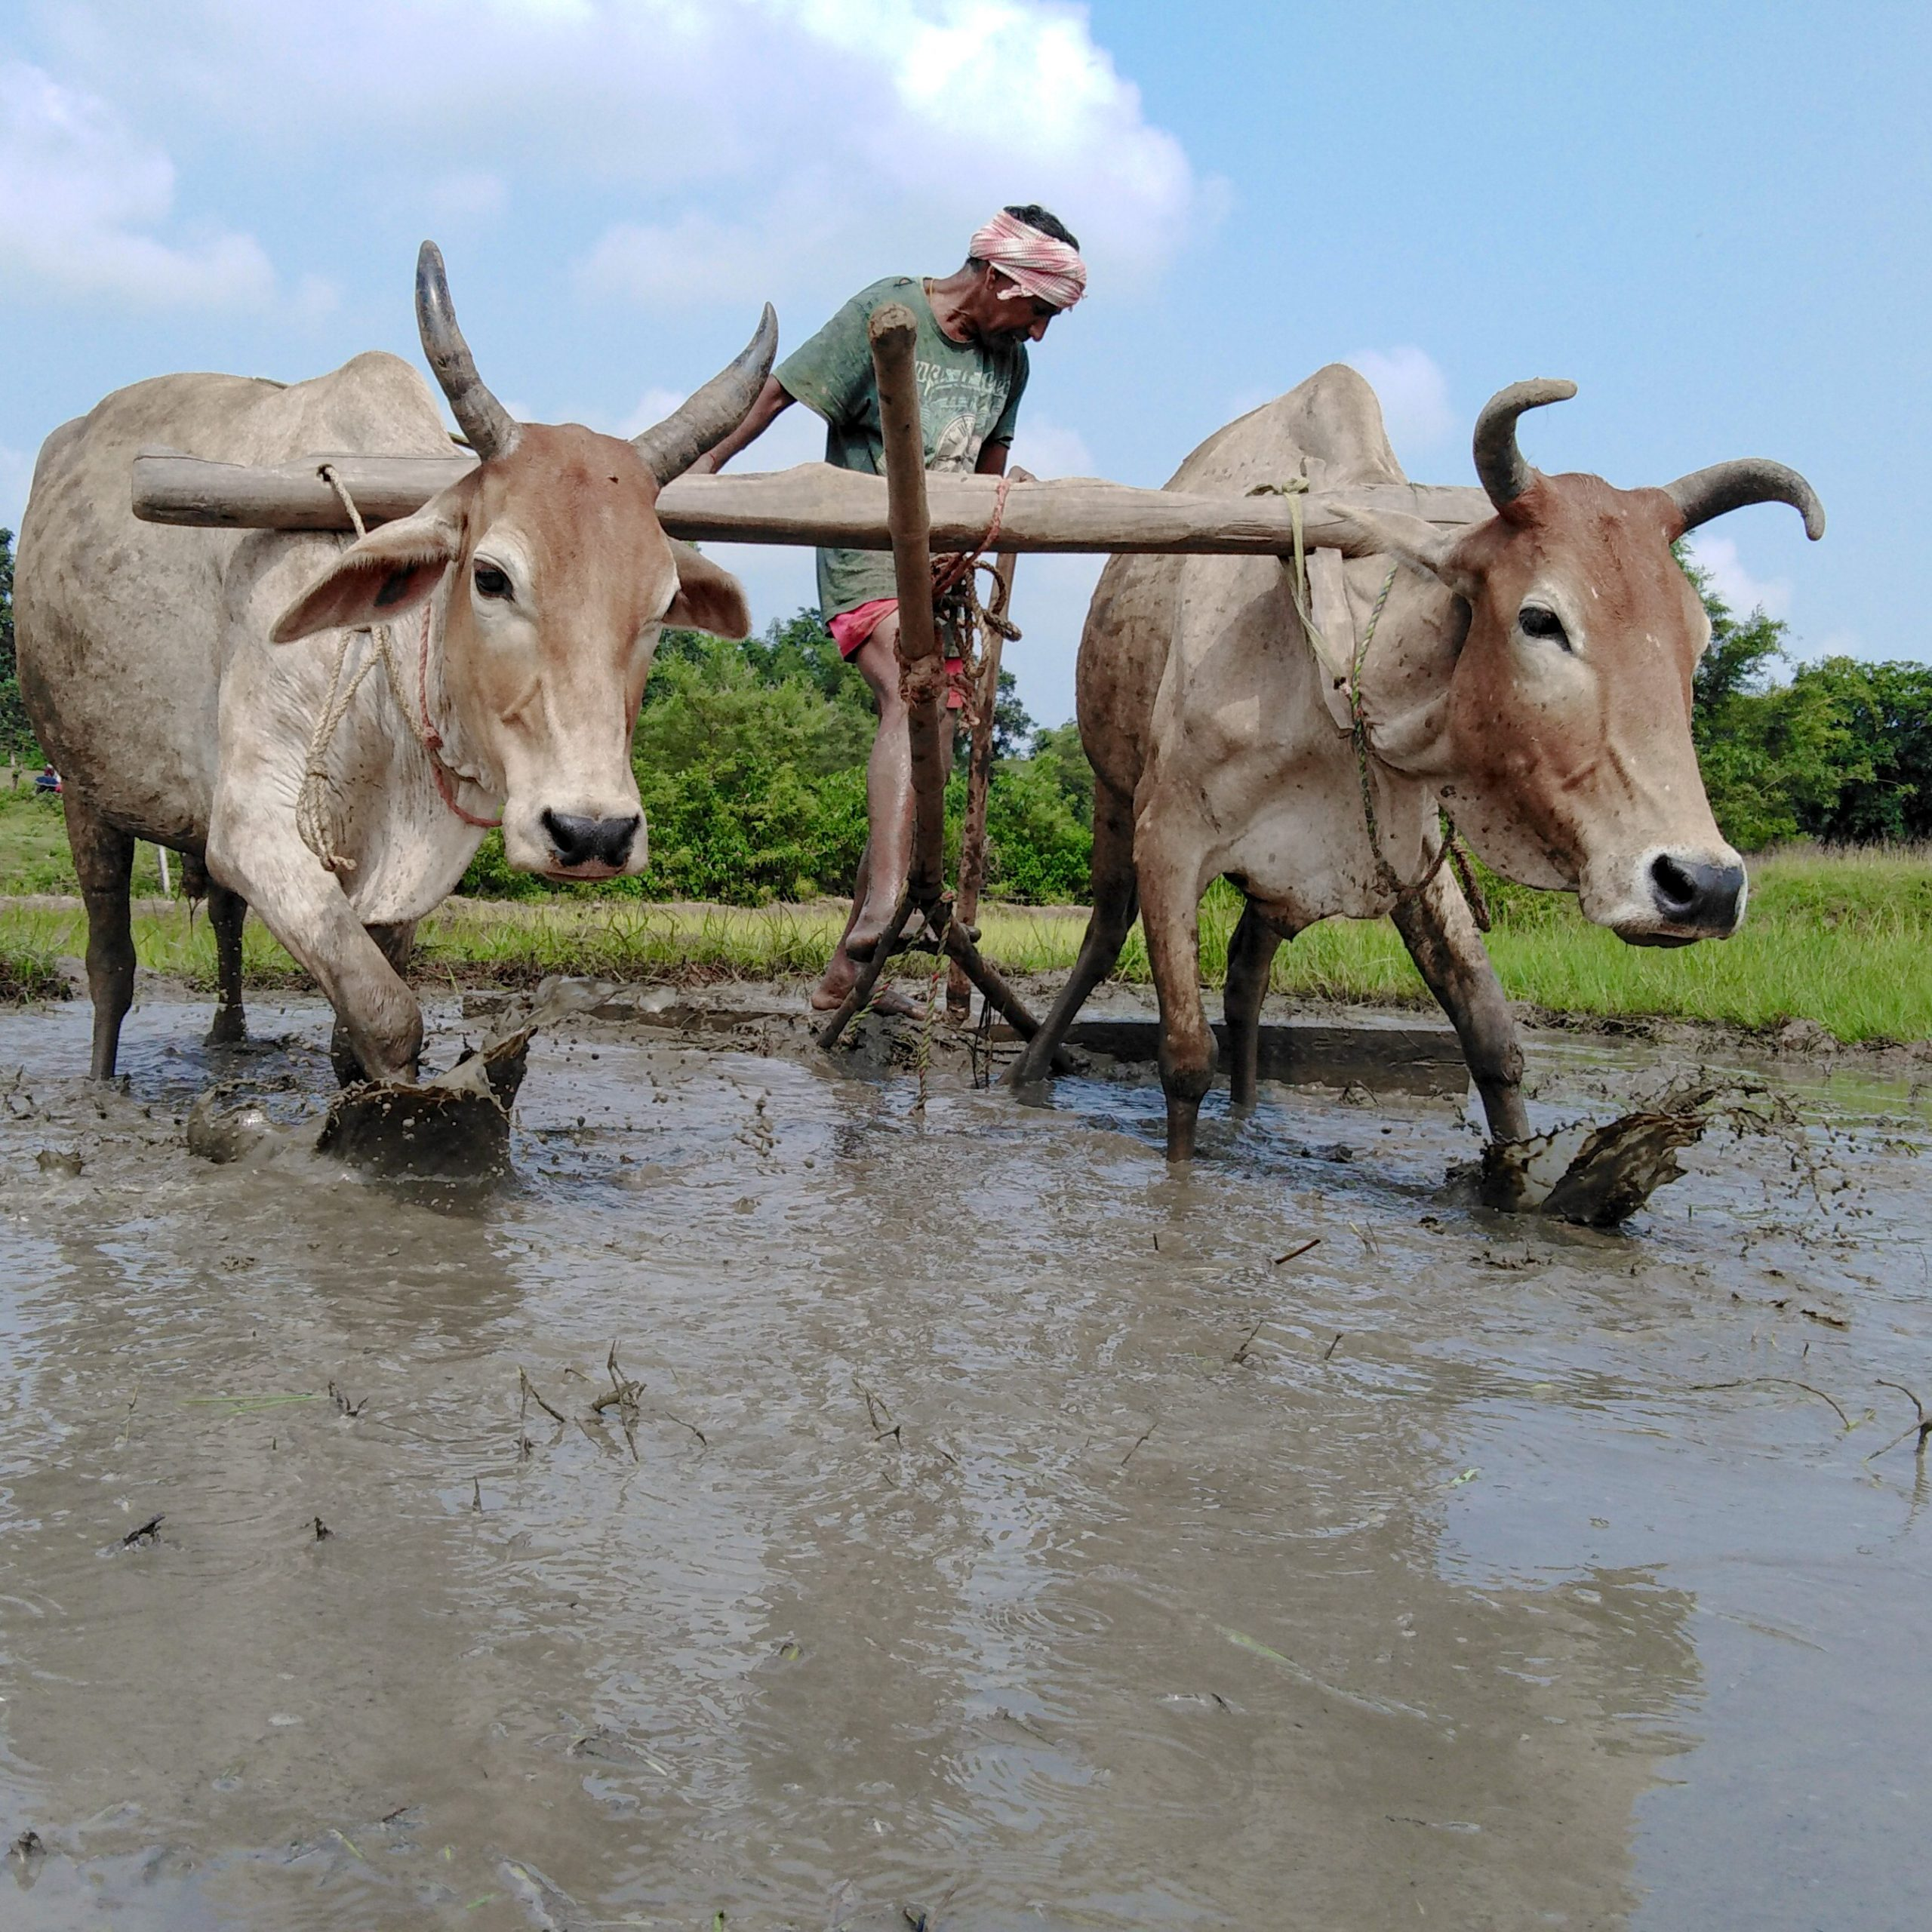 Ploughing muddy field with oxen